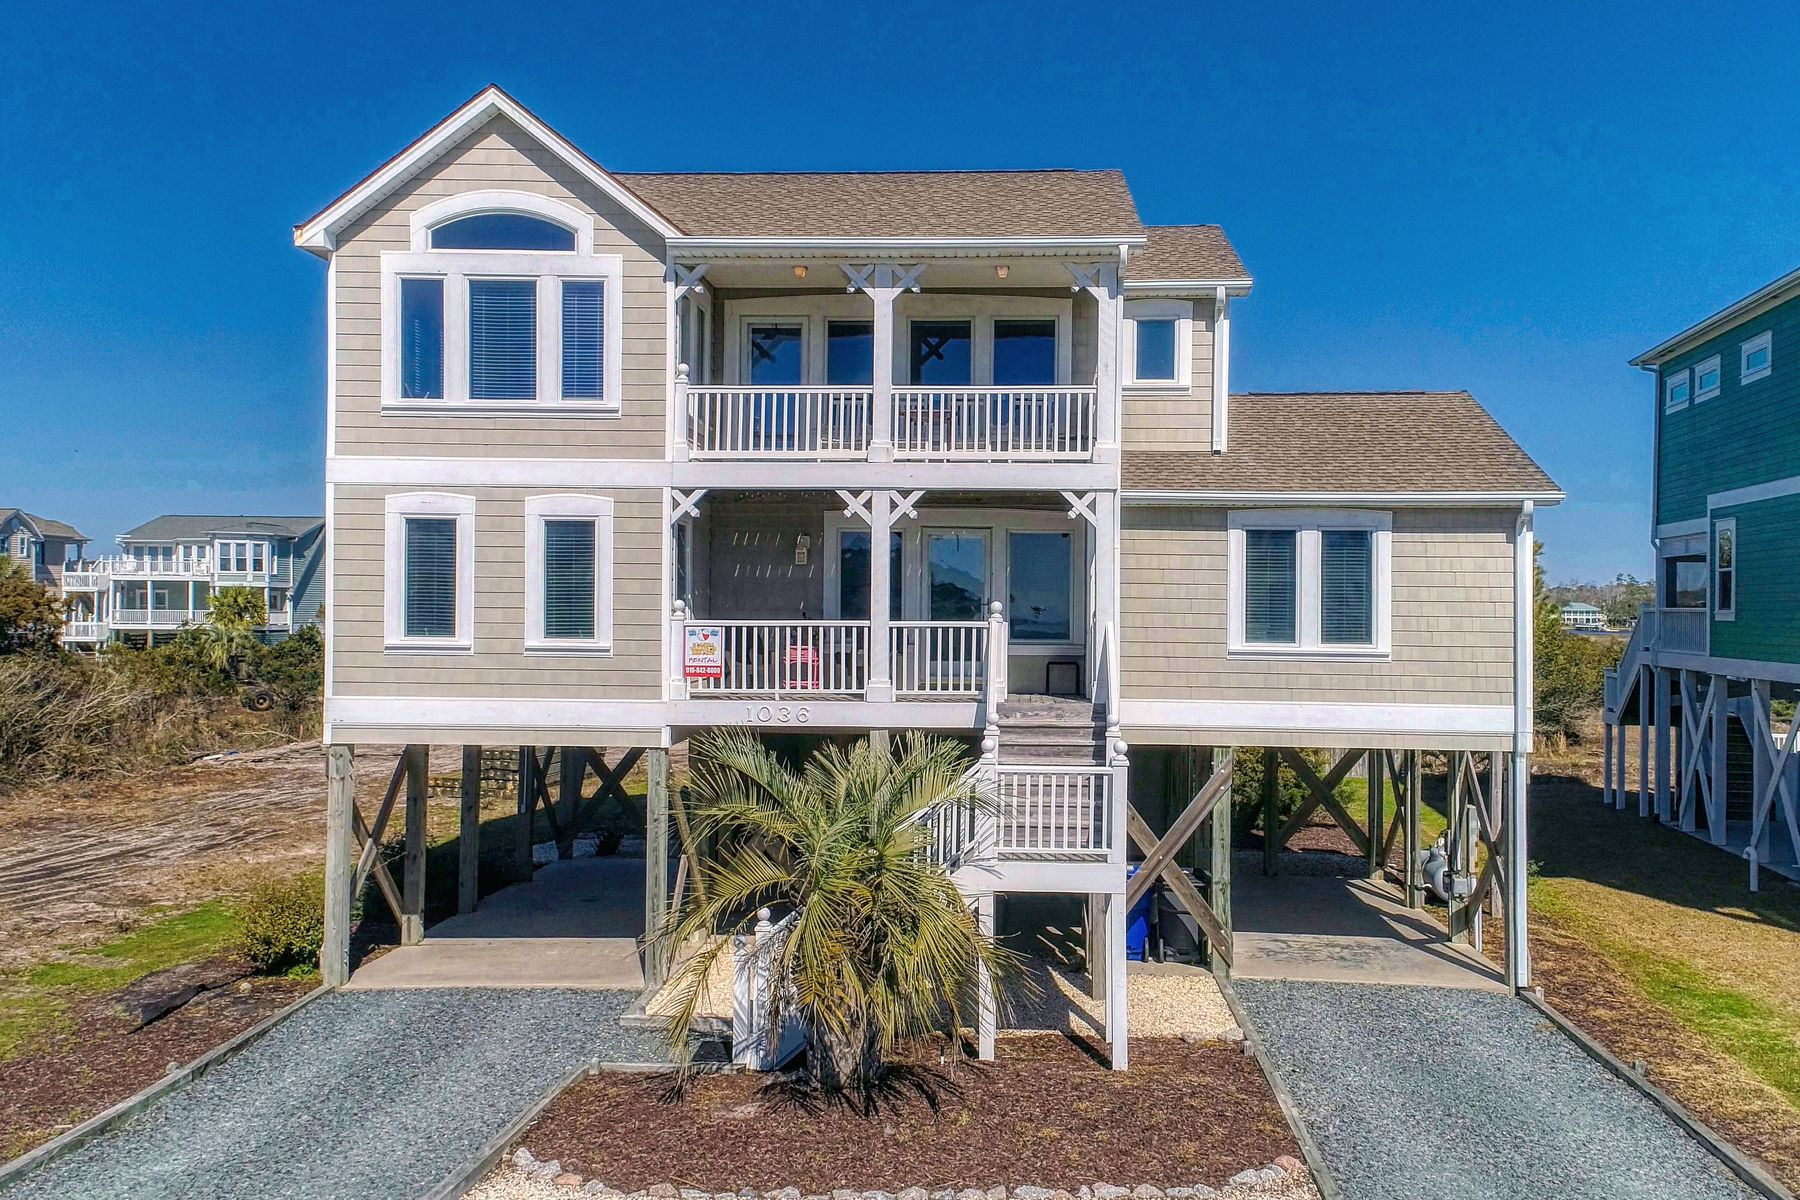 Single Family Homes for Sale at Coastal Outdoor Living Beach Home 1036 Ocean Boulevard W Holden Beach, North Carolina 28462 United States